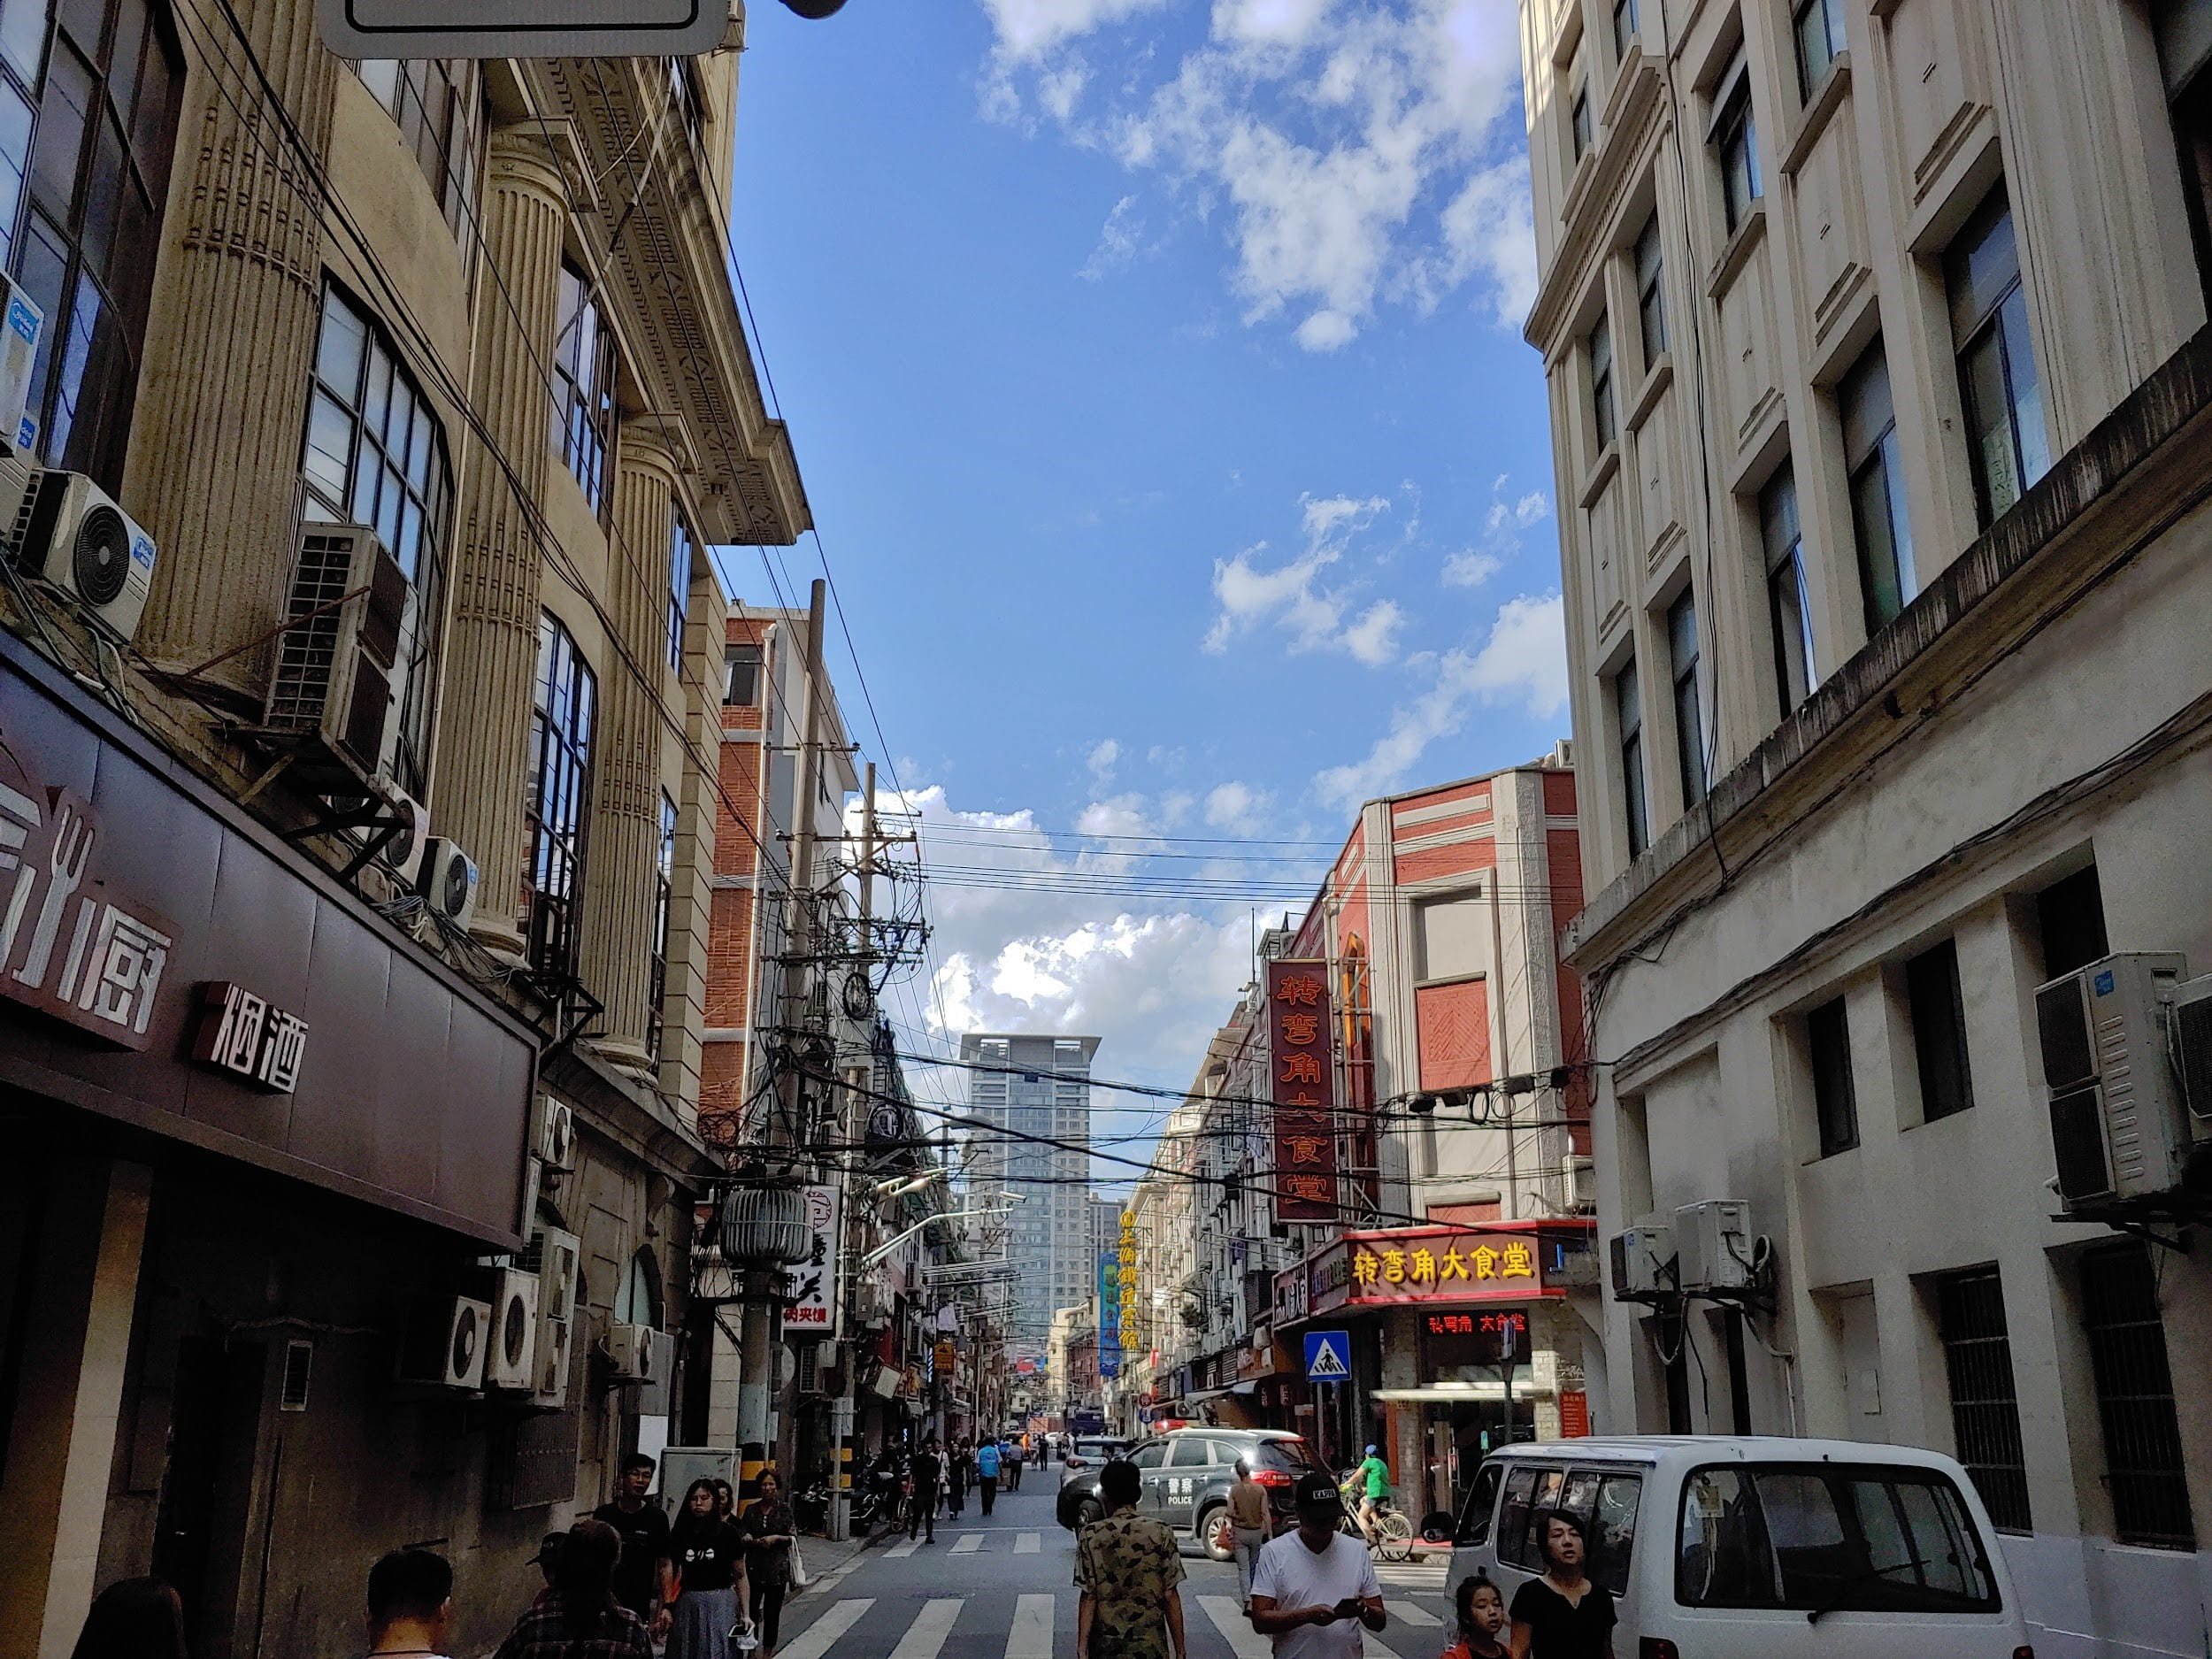 Looking down a street in Shanghai with buildings on both sides and blue sky and clouds in the background